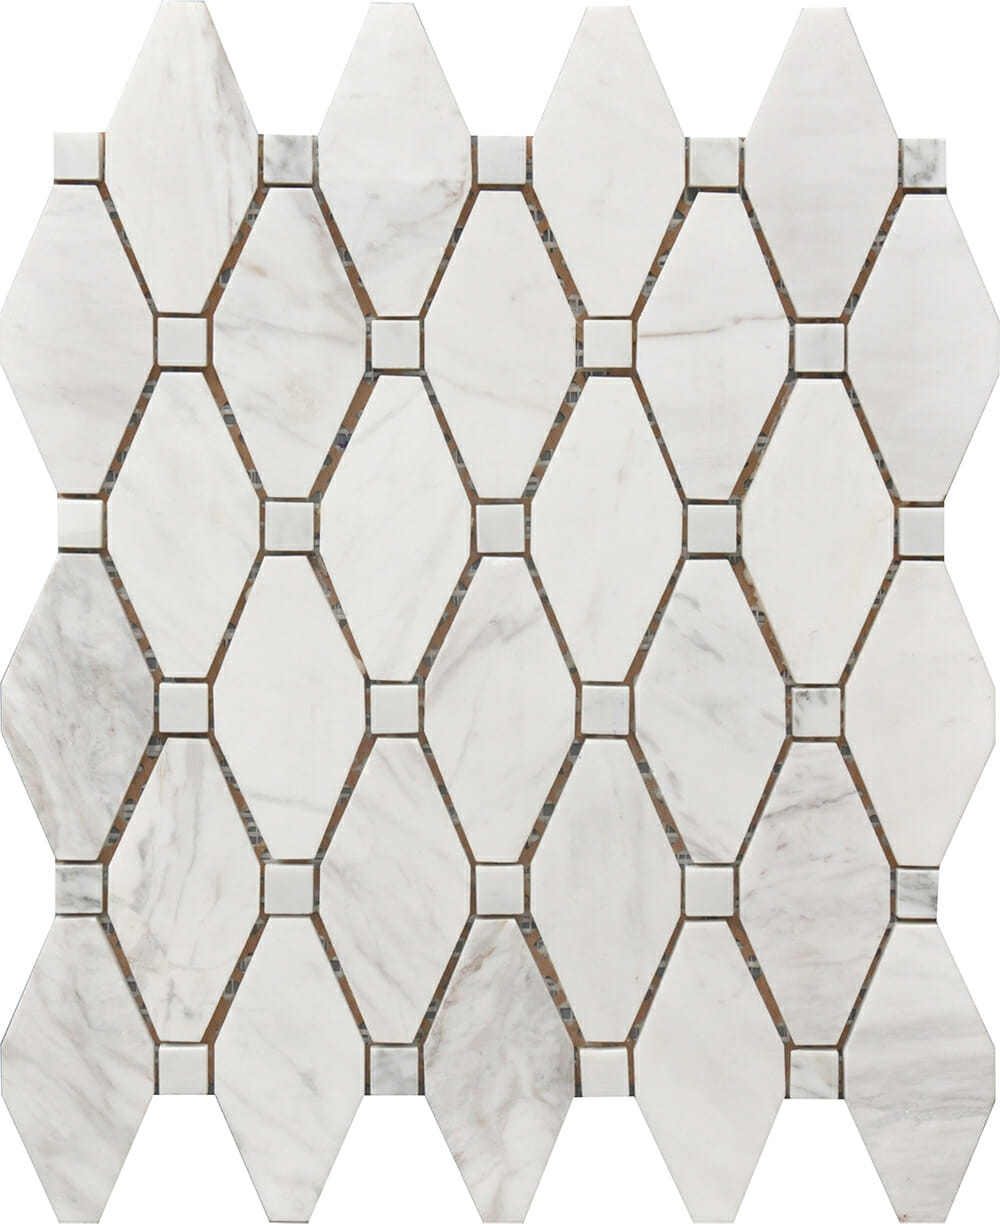 White Amp Grey Marble Large Rhombus Pattern Tiles And